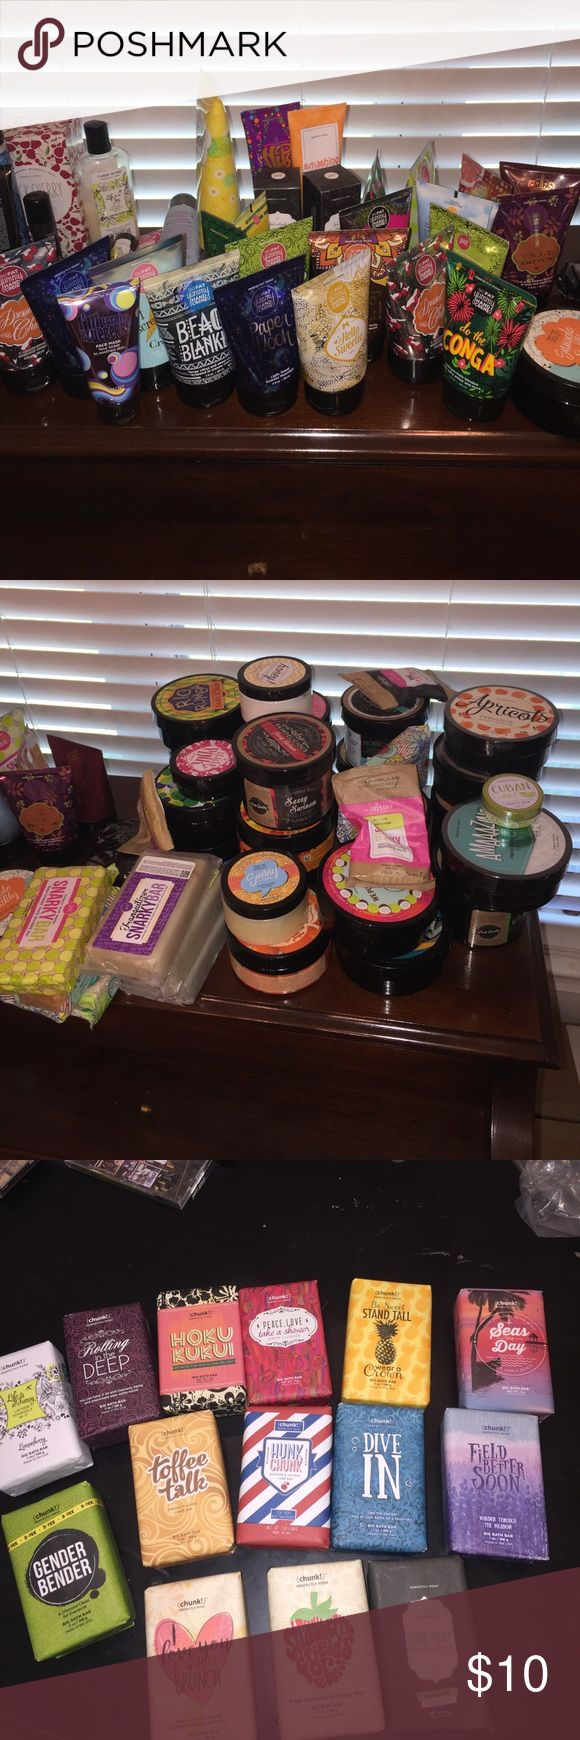 Deluxe Sample Pack!! You'll get 12 samples of Perfectly Posh items.  I have face wash, face masks, hand creams, chunks, snarky bars, body scrubs, body butters, etc.  This is a perfect way to test out some items before you buy the full product.  If you want more information feel free to leave you email so I can contact you. perfectly posh Makeup